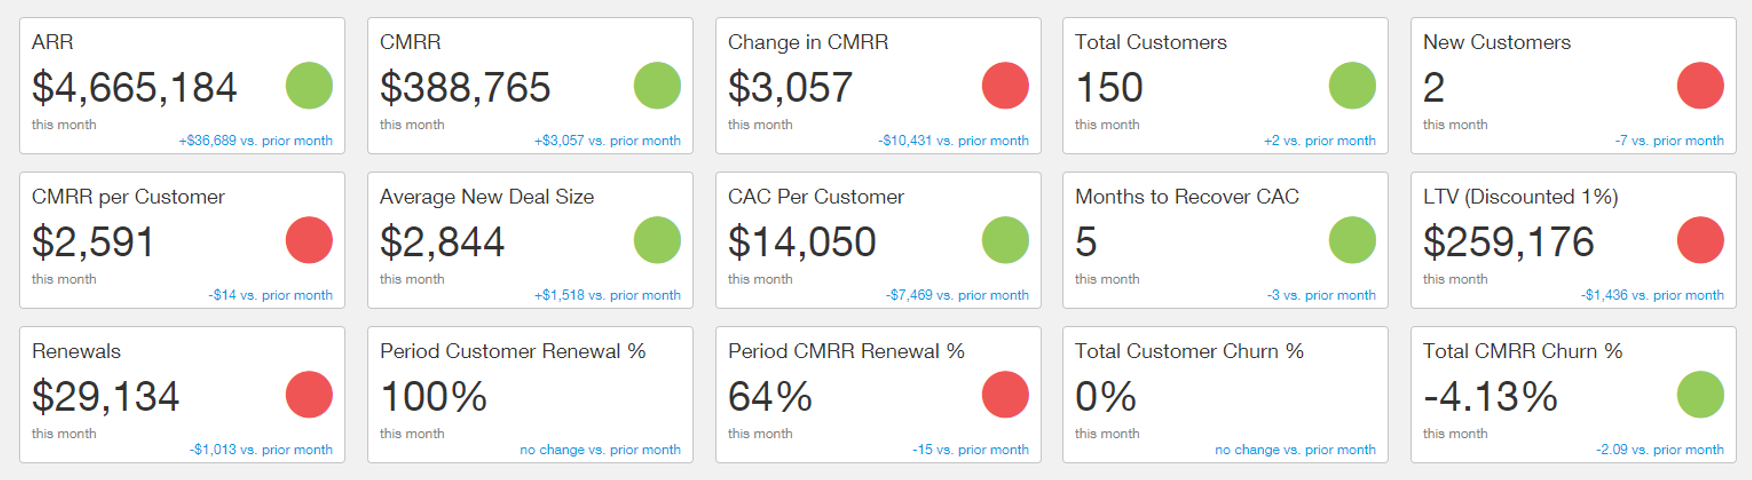 saas dashboard screenshot managed accounting services by AcctTwo